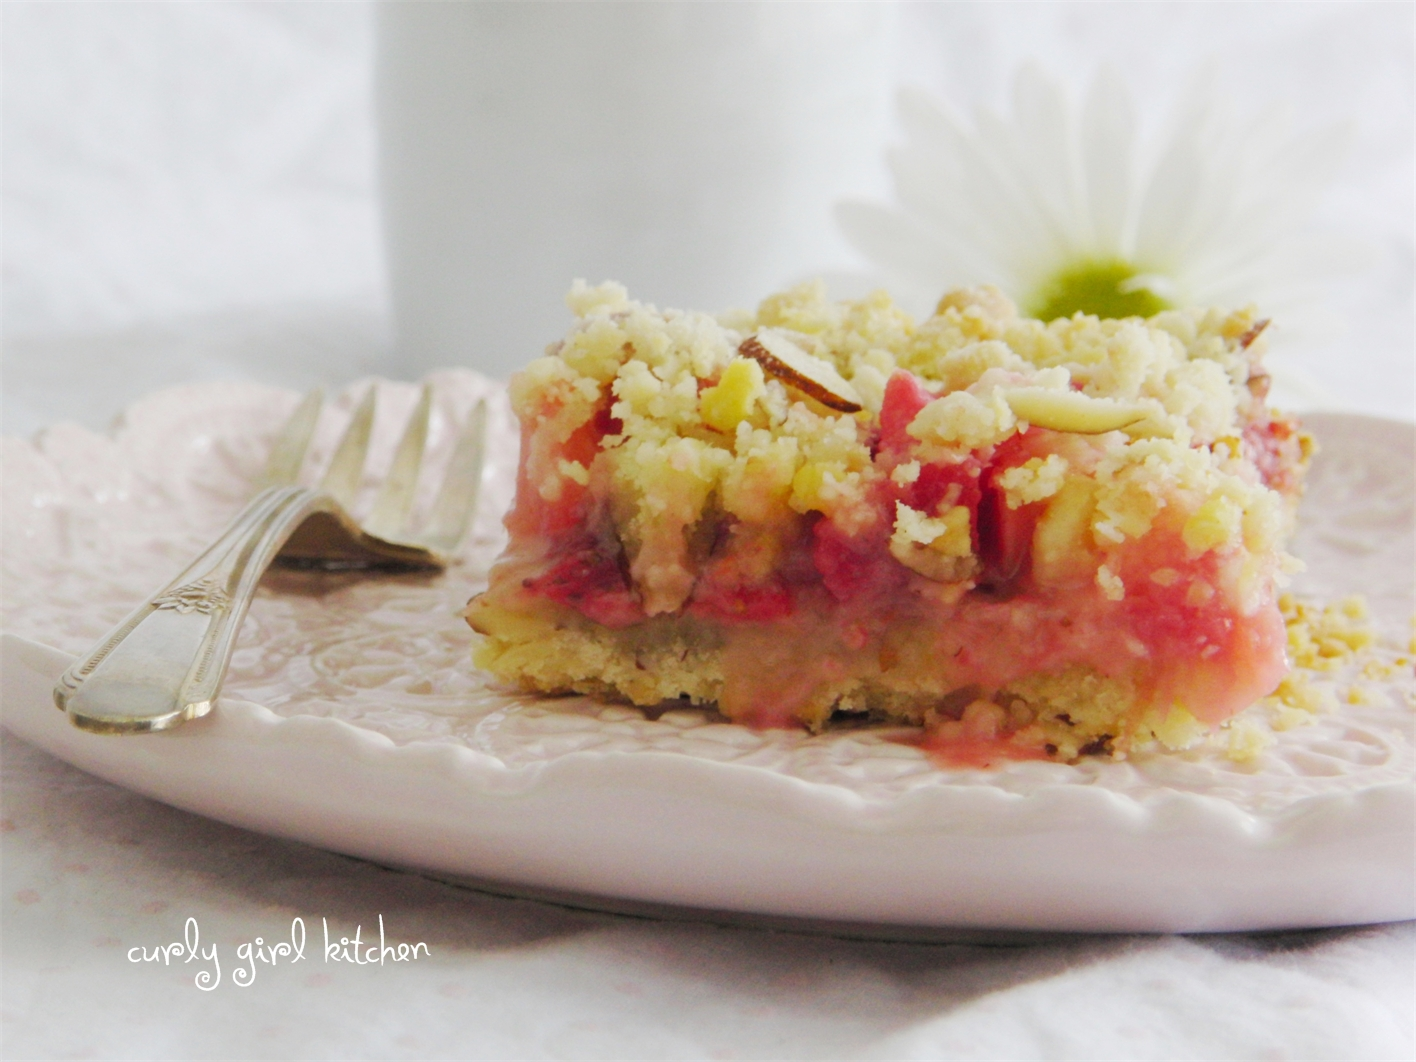 ... curlygirlkitchen.com/2013/04/strawberry-rhubarb-almond-crumb-bars.html